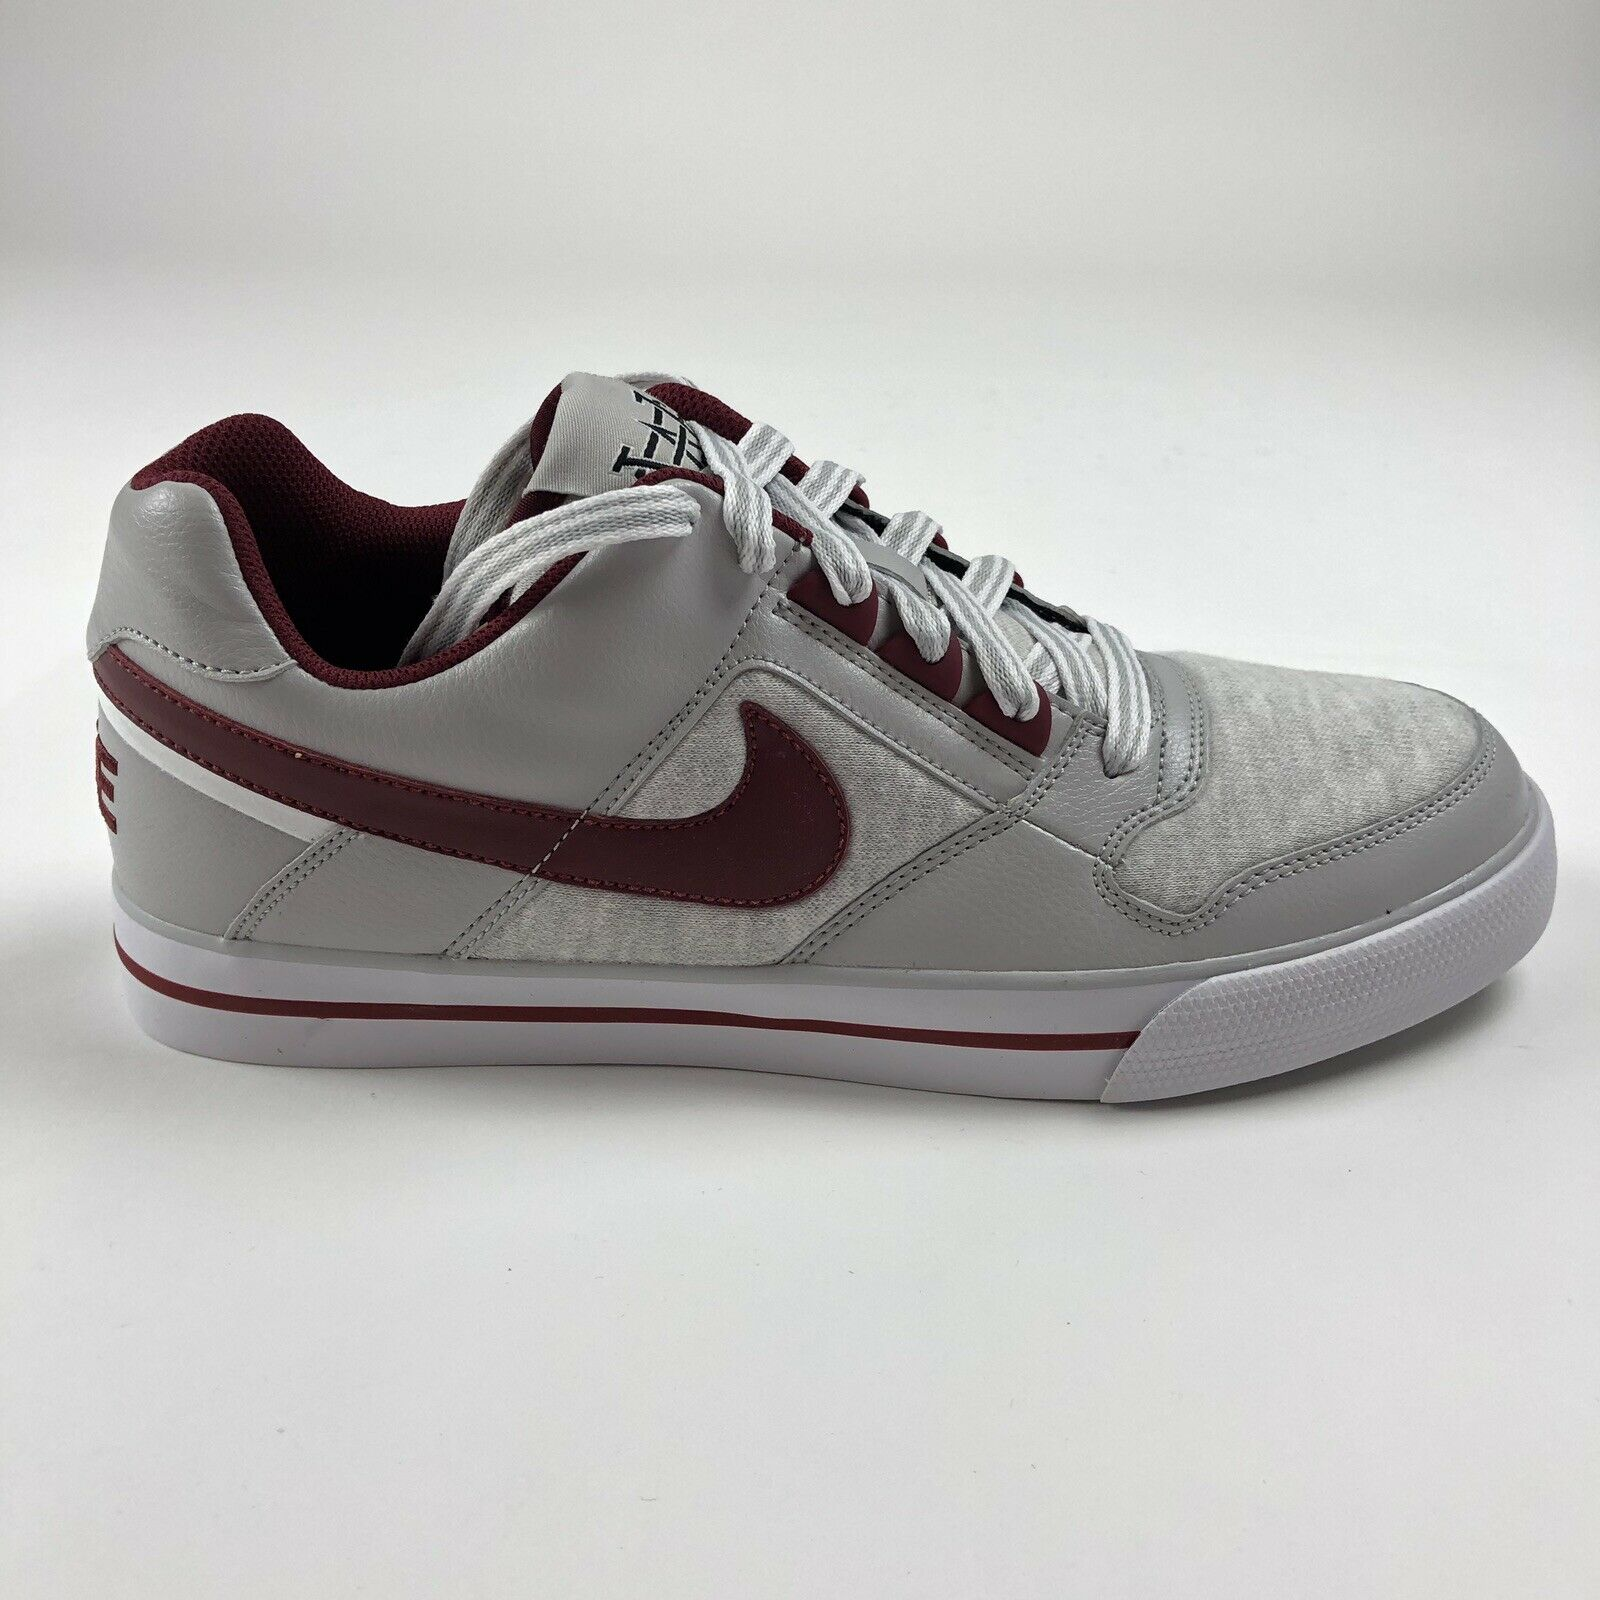 sale retailer a5f7c 6b20d Nike Nike Nike Delta Force AC Sz 9.5 Low Top shoes White Team Red Neutral  Grey